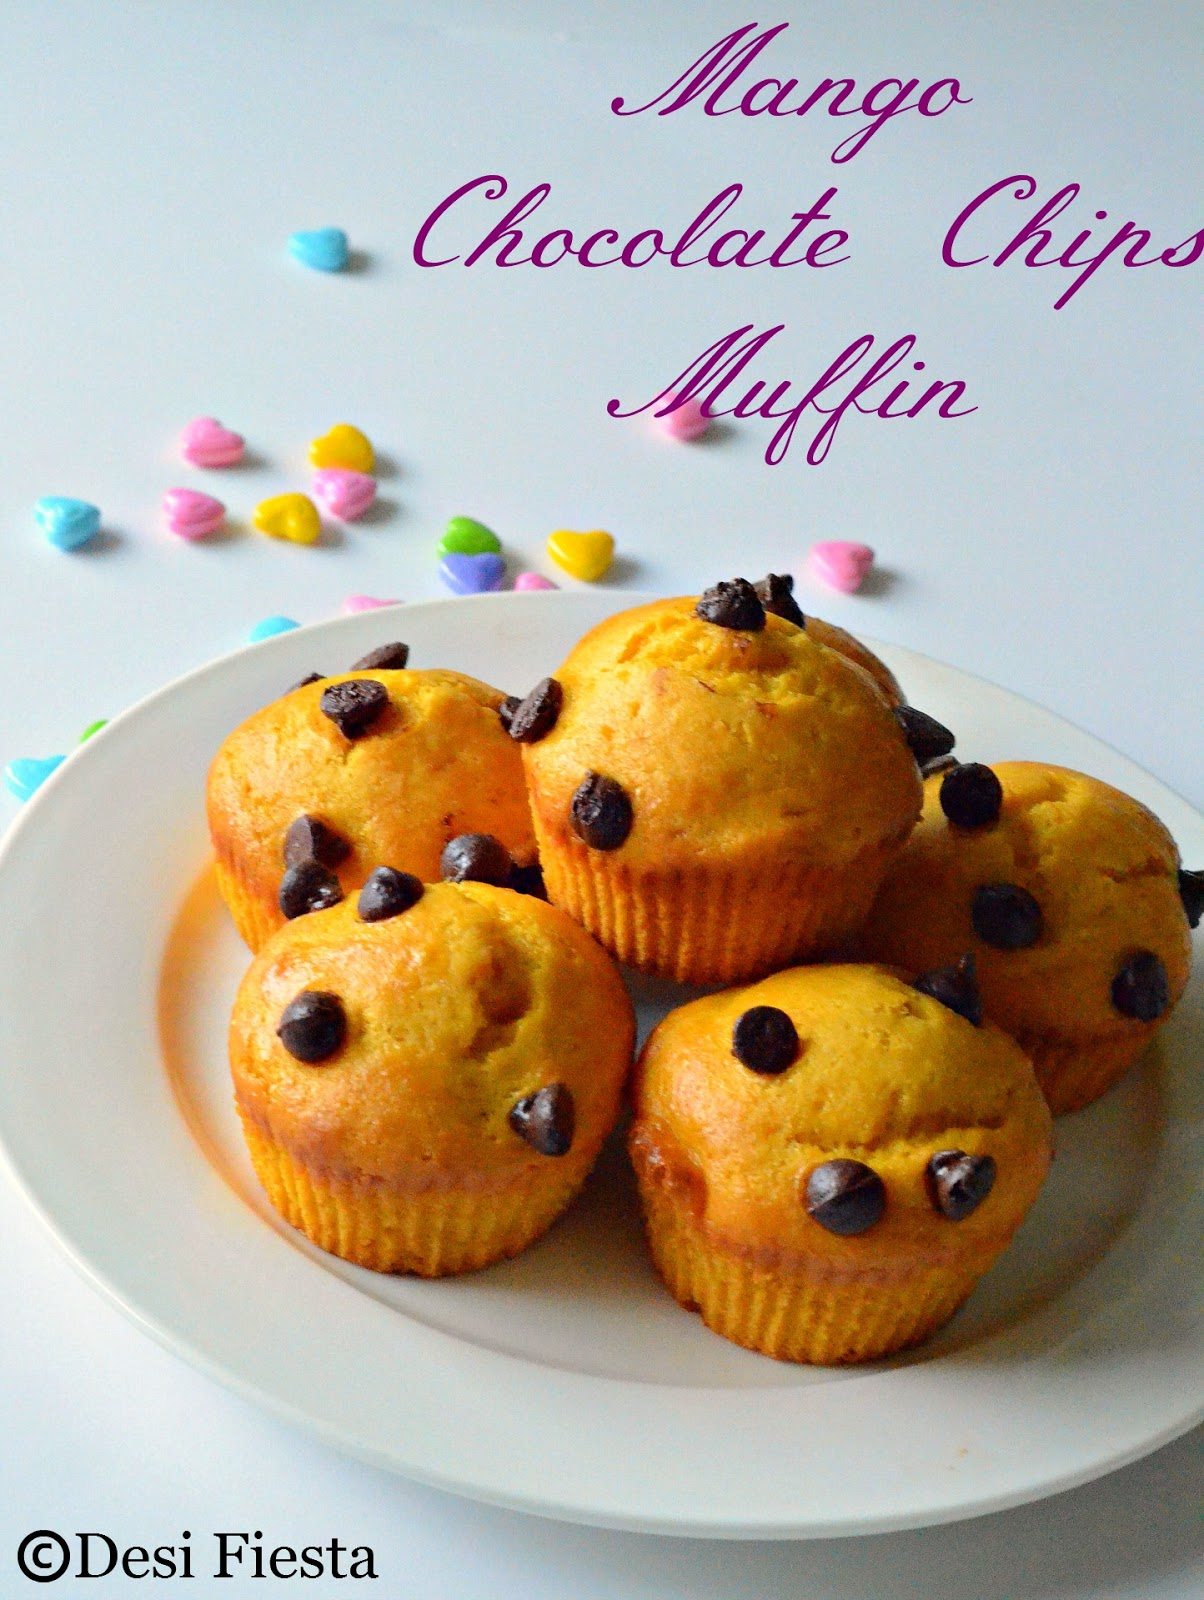 Chocolate chips Muffin recipes